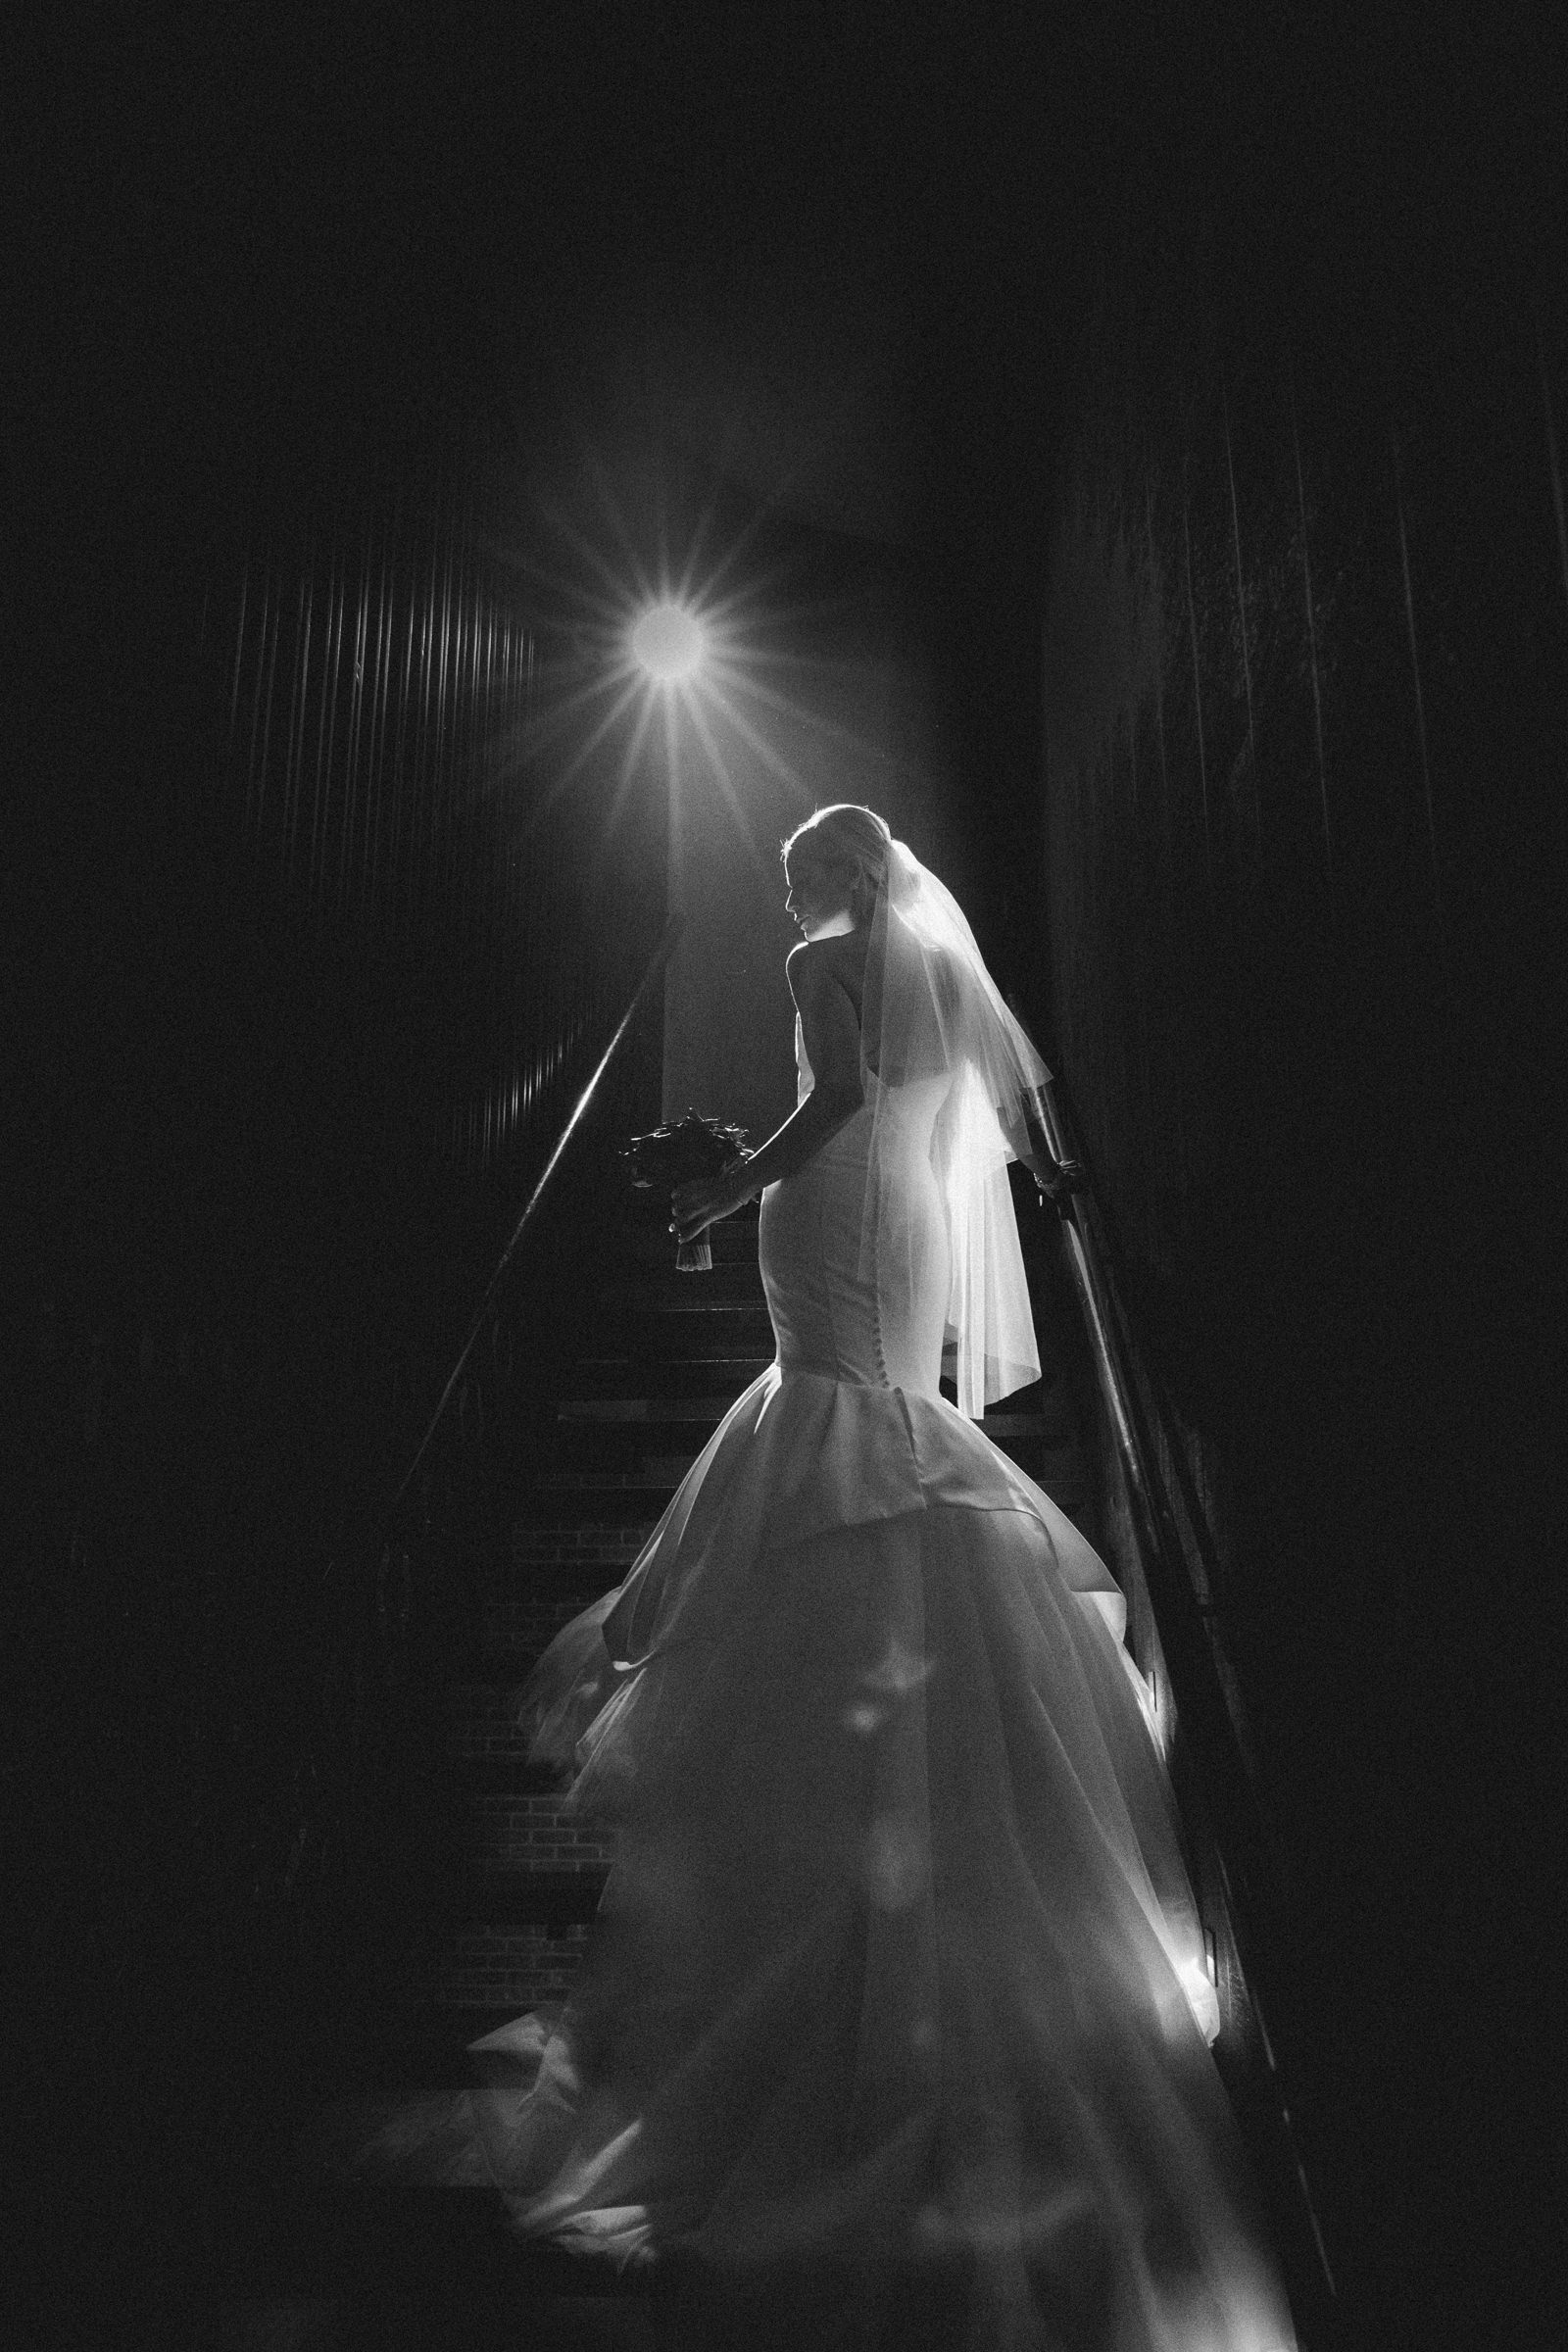 Glamorous bride ascending stairs - Photo by Susan Stripling Photography